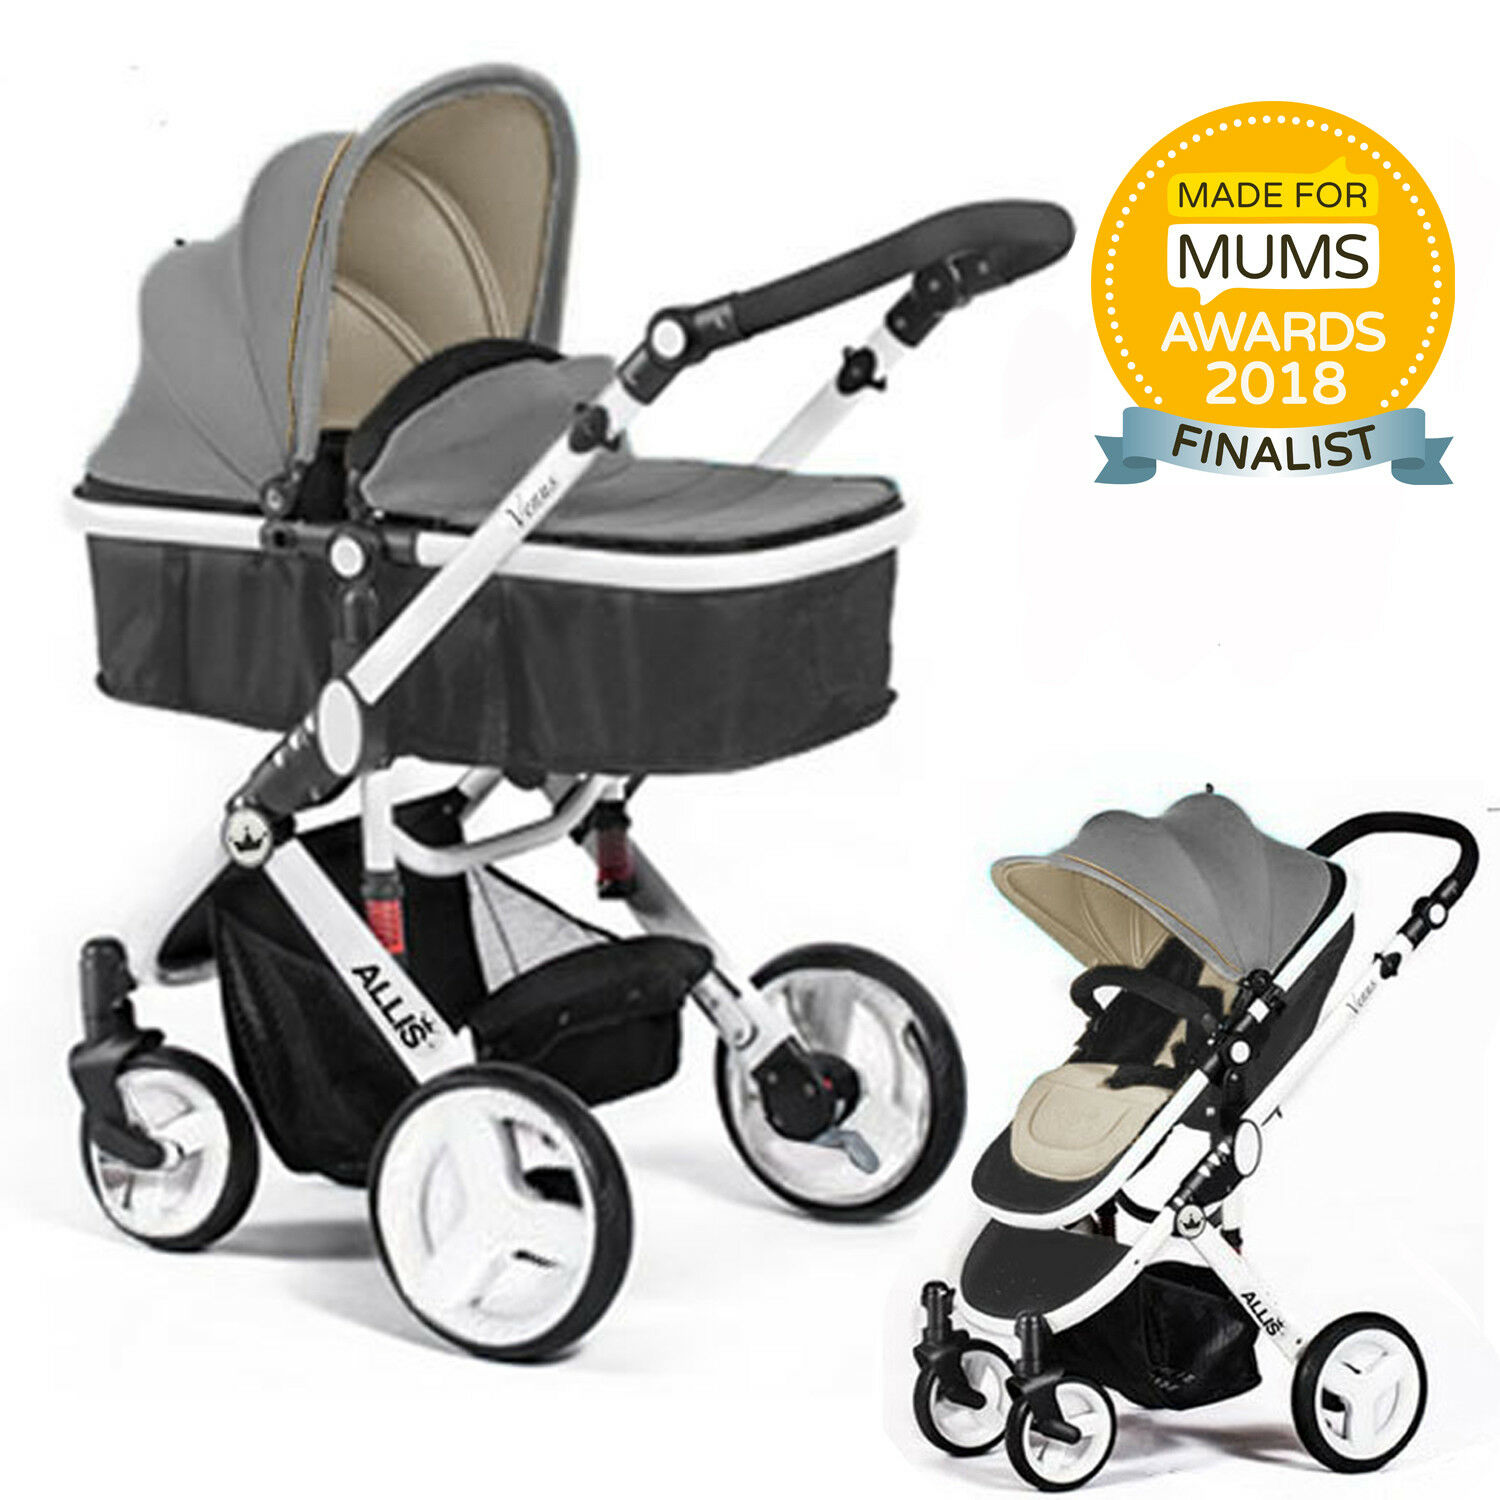 Toy Buggy With Car Seat Allis 2in1 Baby Pram Pushchair Stroller Buggy Carry Cot Free Car Seat Adaptor